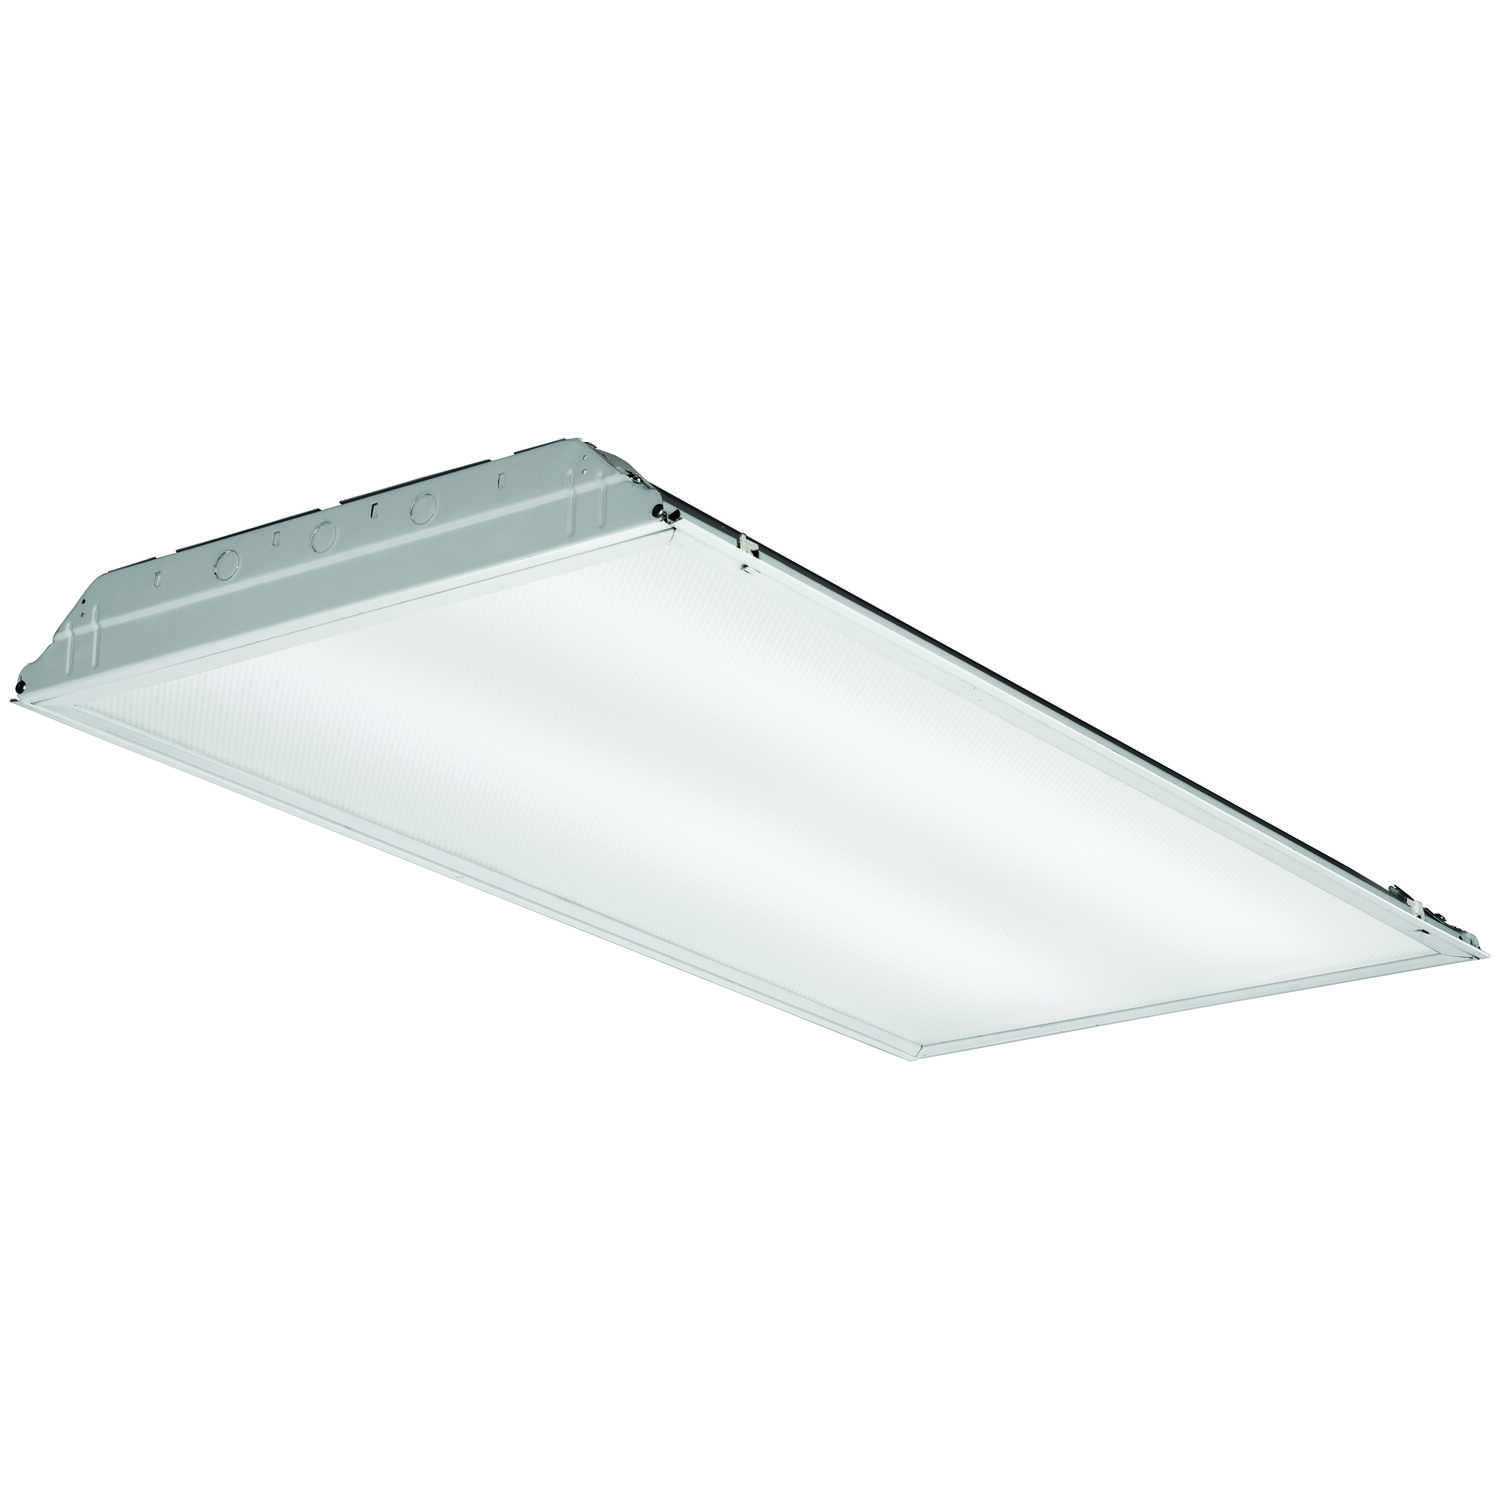 Lithonia Lighting  LED Troffer Fixture  3-1/4 in. 48 in. 24 in. 39 watts